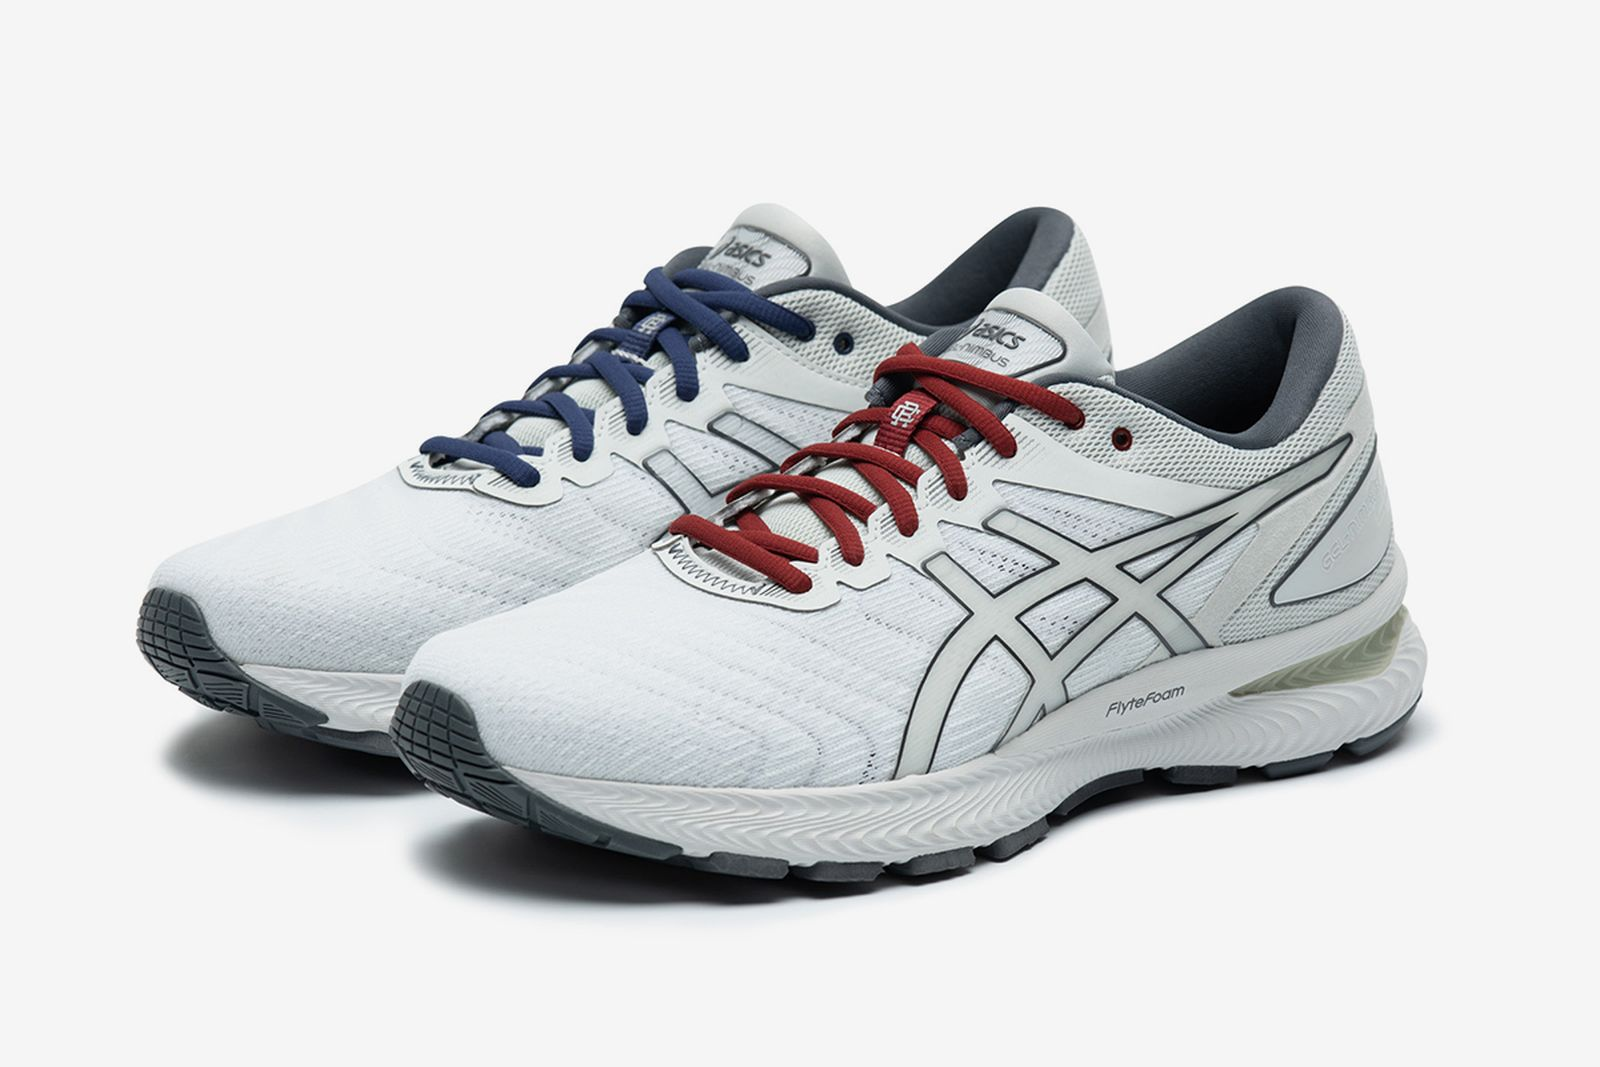 fascismo documental Recuento  Reigning Champ x ASICS GEL-Nimbus 22: Where to Buy This Week